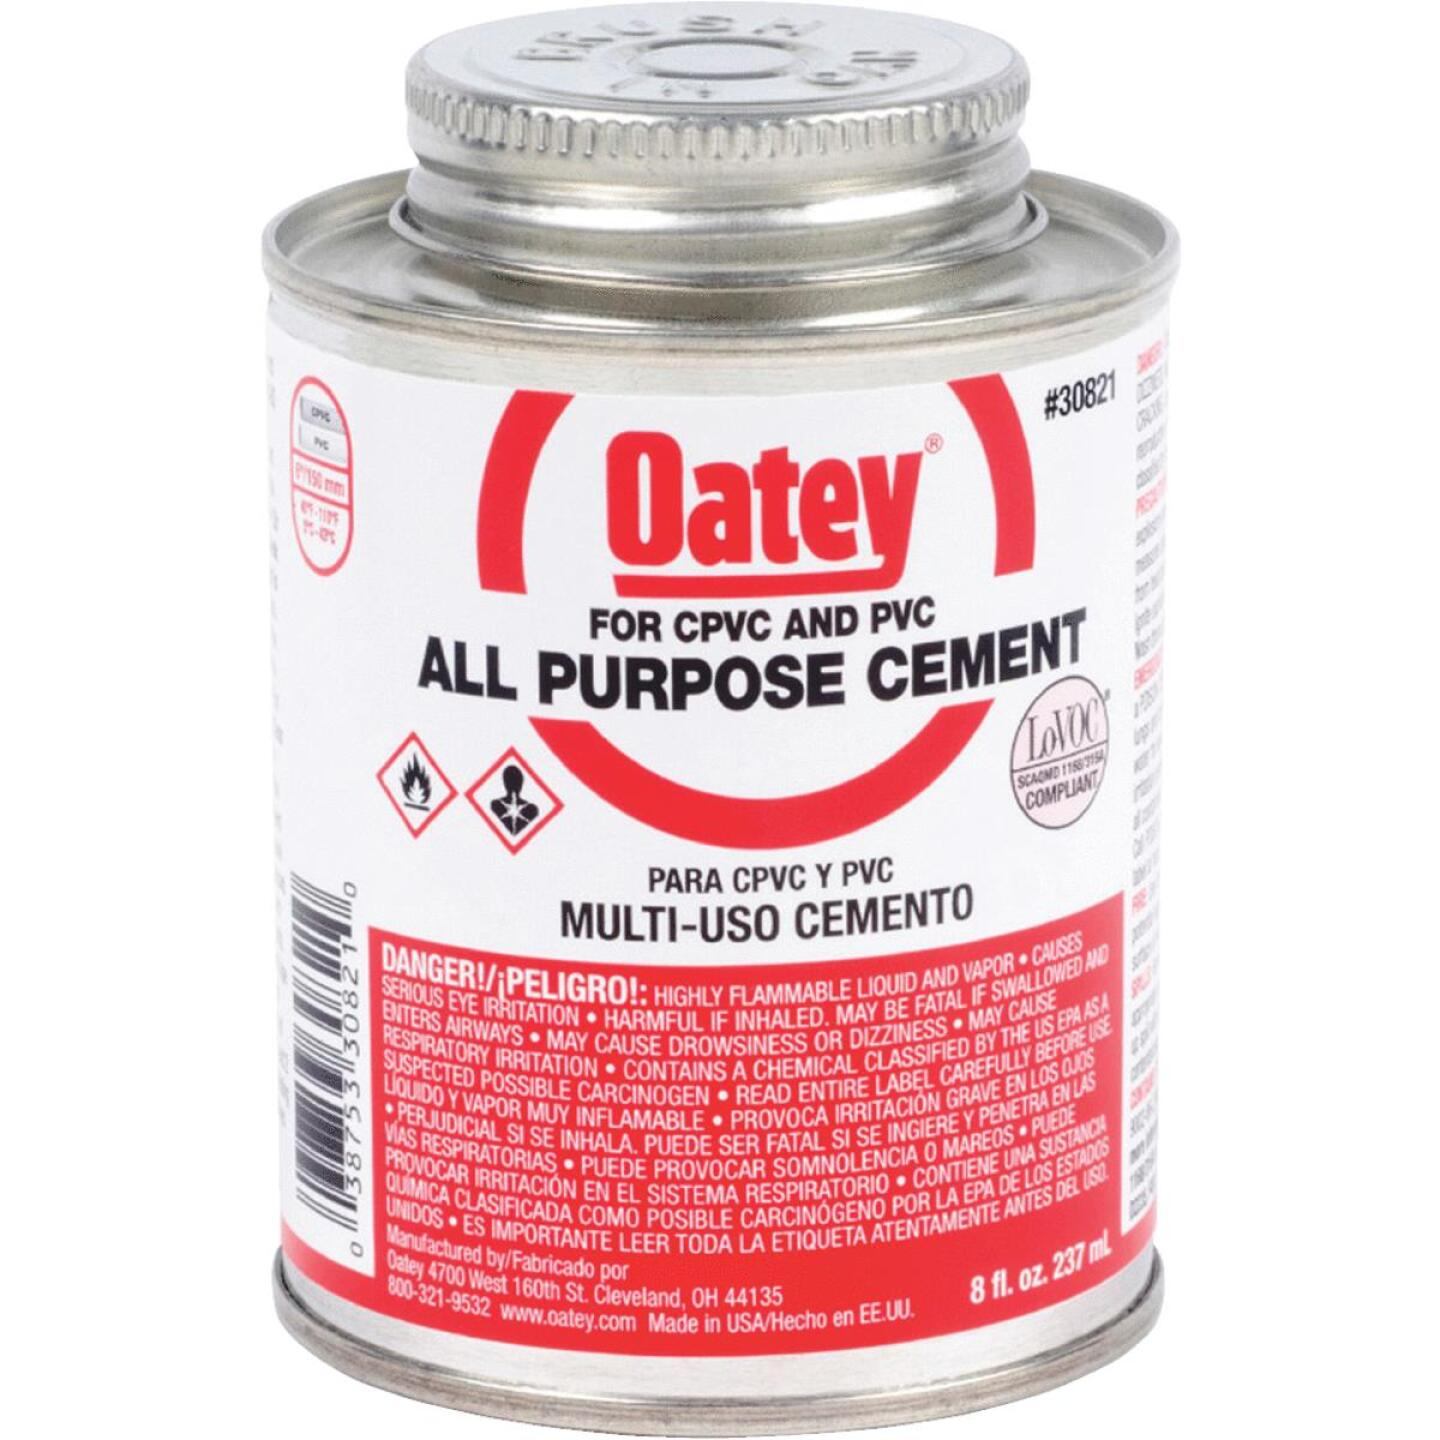 Oatey 8 Oz. Heavy Bodied Clear Multi Purpose Cement Image 1